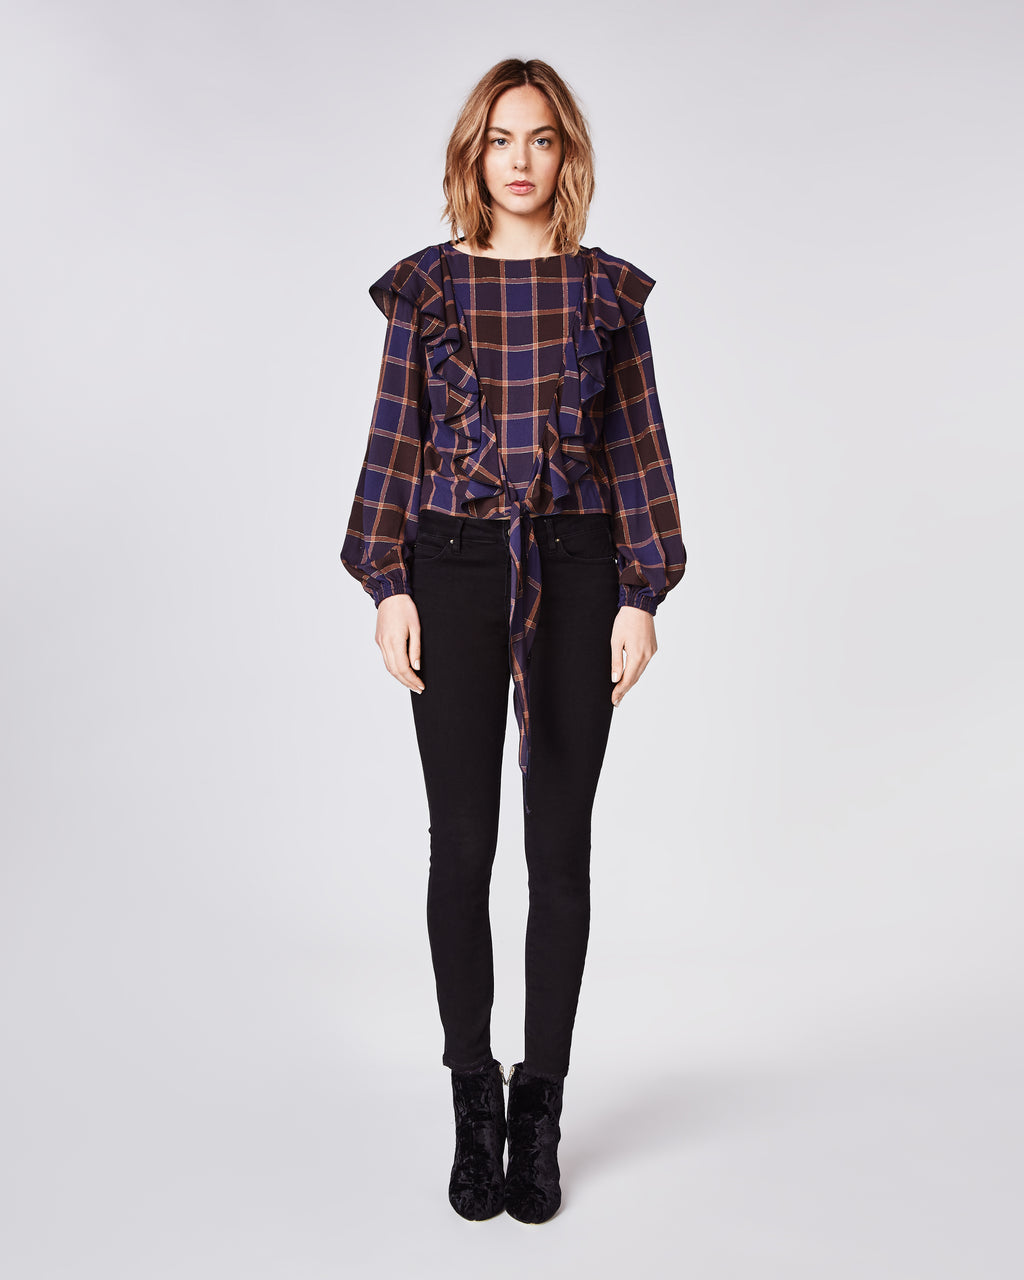 BG10300 - BOYFRIEND PLAID L/S RUFFLE BLOUSE - tops - blouses - The perfect update to the classic plaid top. Featuring a ruffle accent and tie-waist, you will want to wear this top everyday this Fall. Unlined.